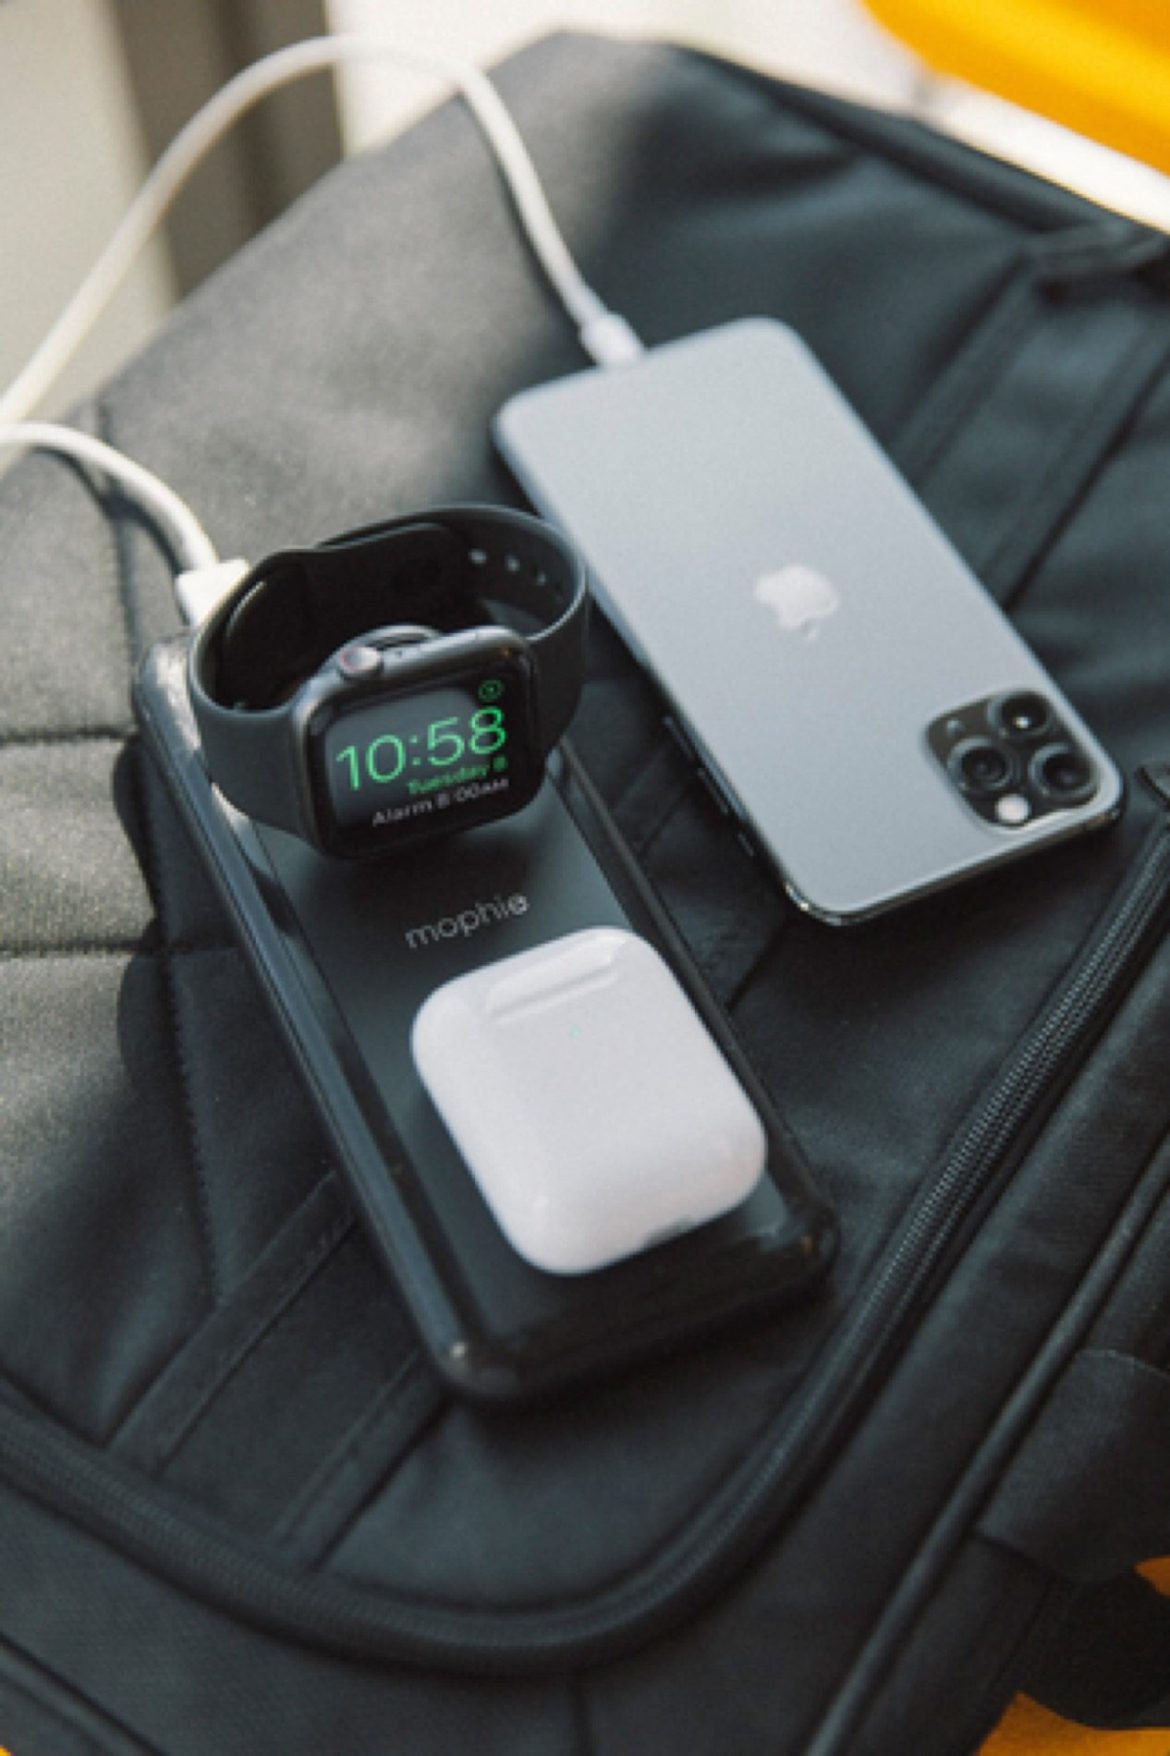 New mophie chargers for your Apple devices are here